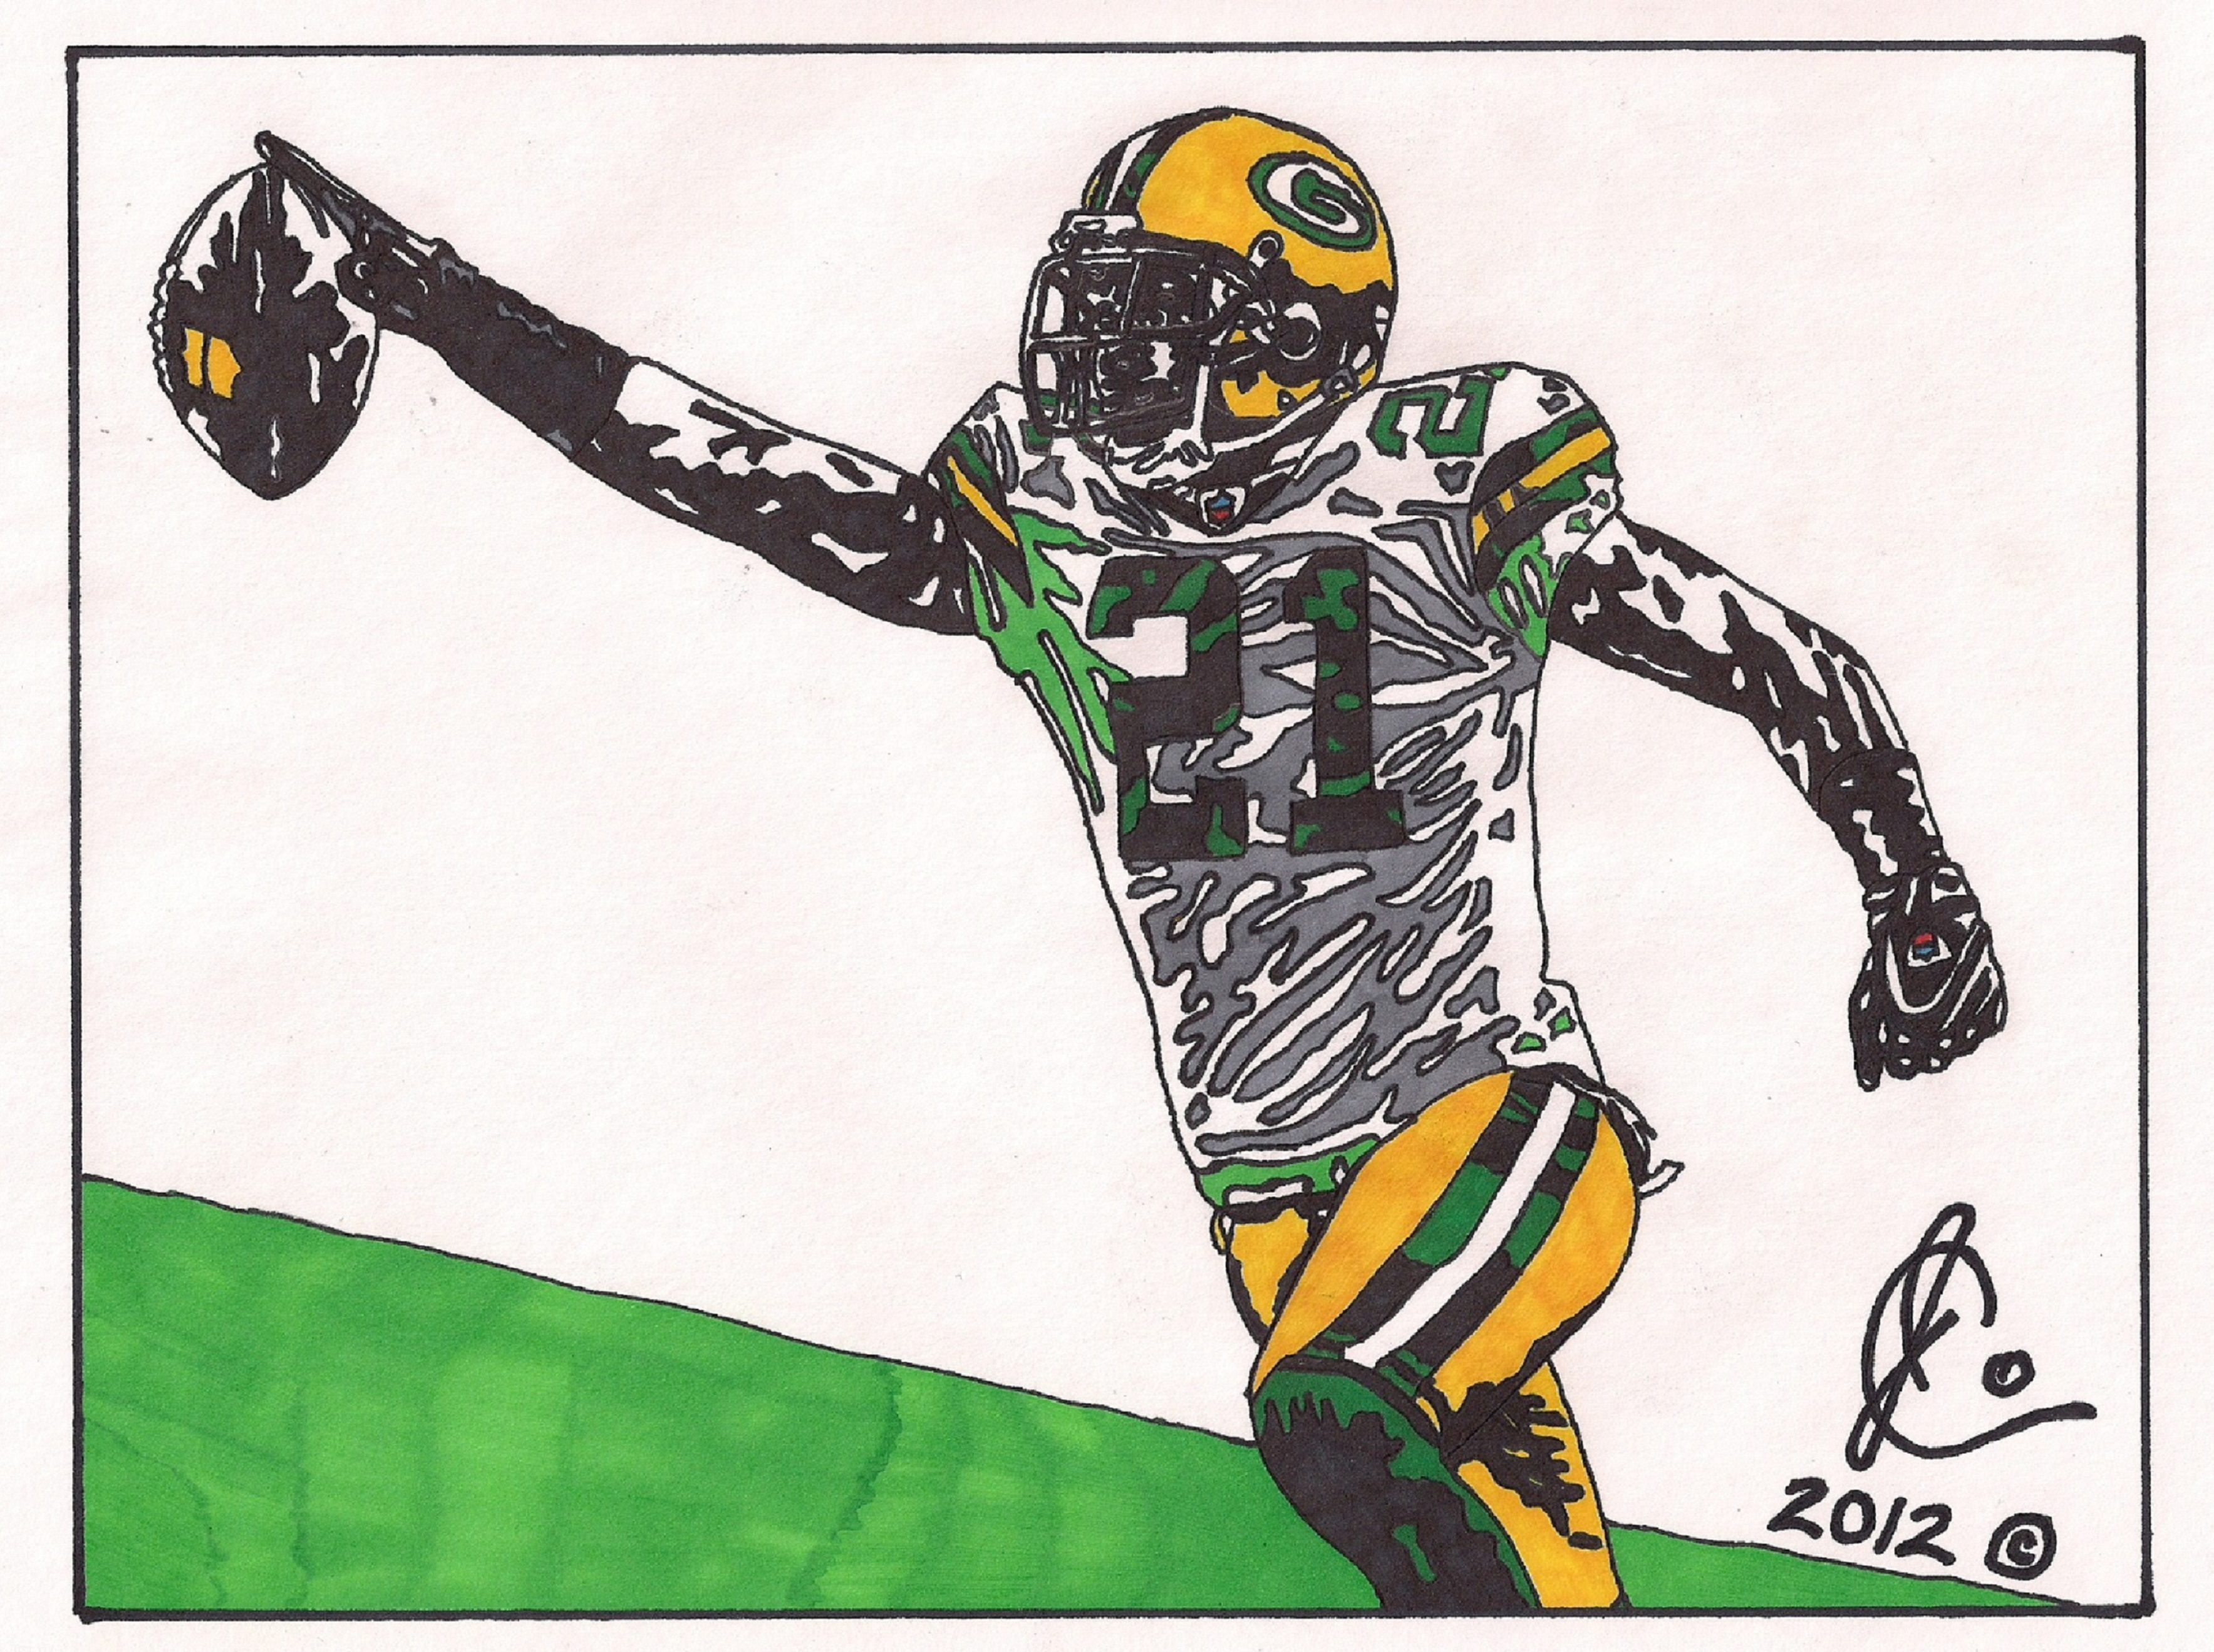 Charles woodson ink illustration packers edition by jcolley79 on deviantart - Charles woodson packers wallpaper ...